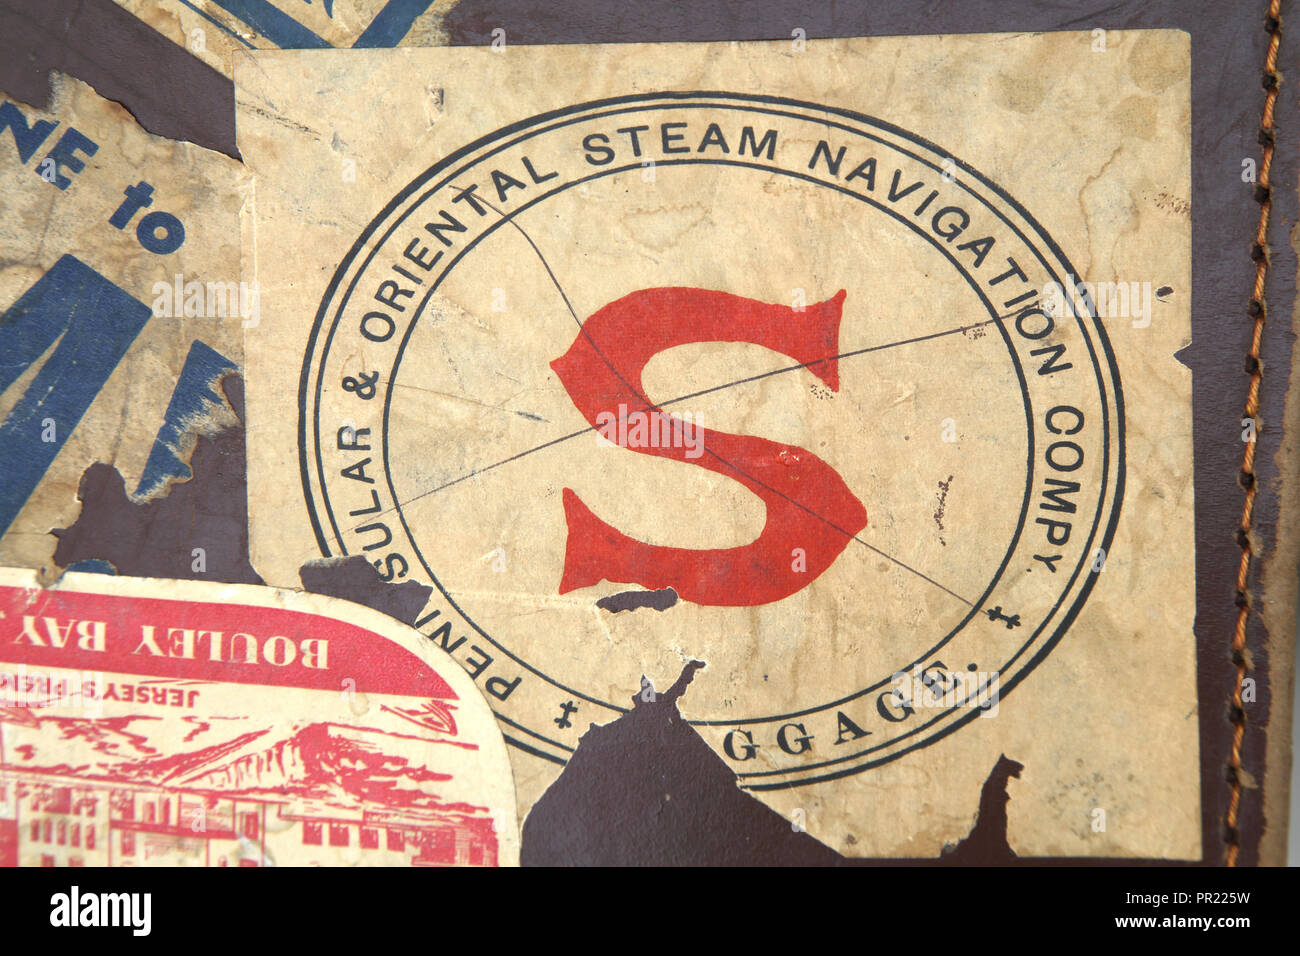 Vintage Leather Everlasta Suitcase with Travel Stickers Peninsular And Oriental Steam Navigation Company - Stock Image